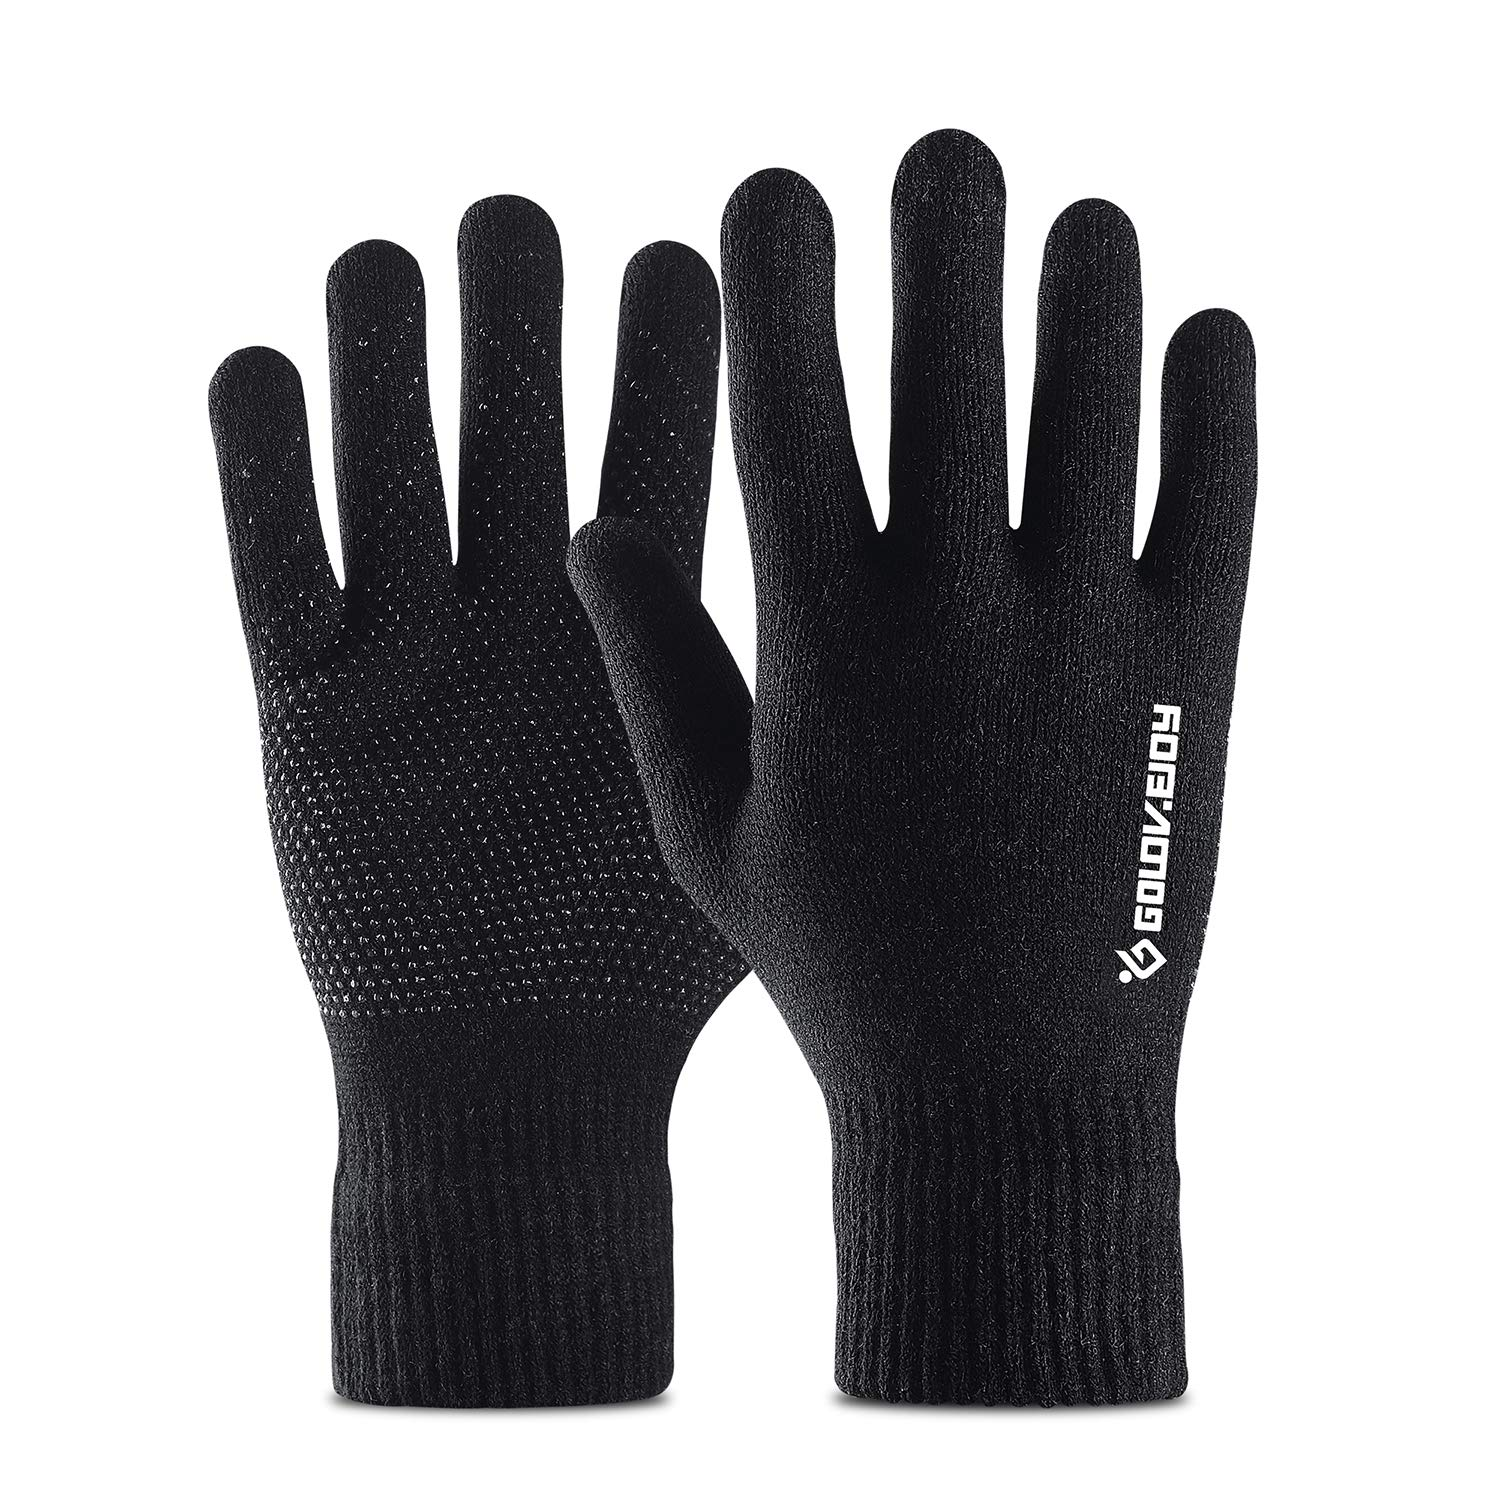 RayLight Winter Warm Touchscreen Technology Gloves, Anti-Slip Grip Palm for Women Men, Cashmere Knit Wool Lined Texting, Black, Large